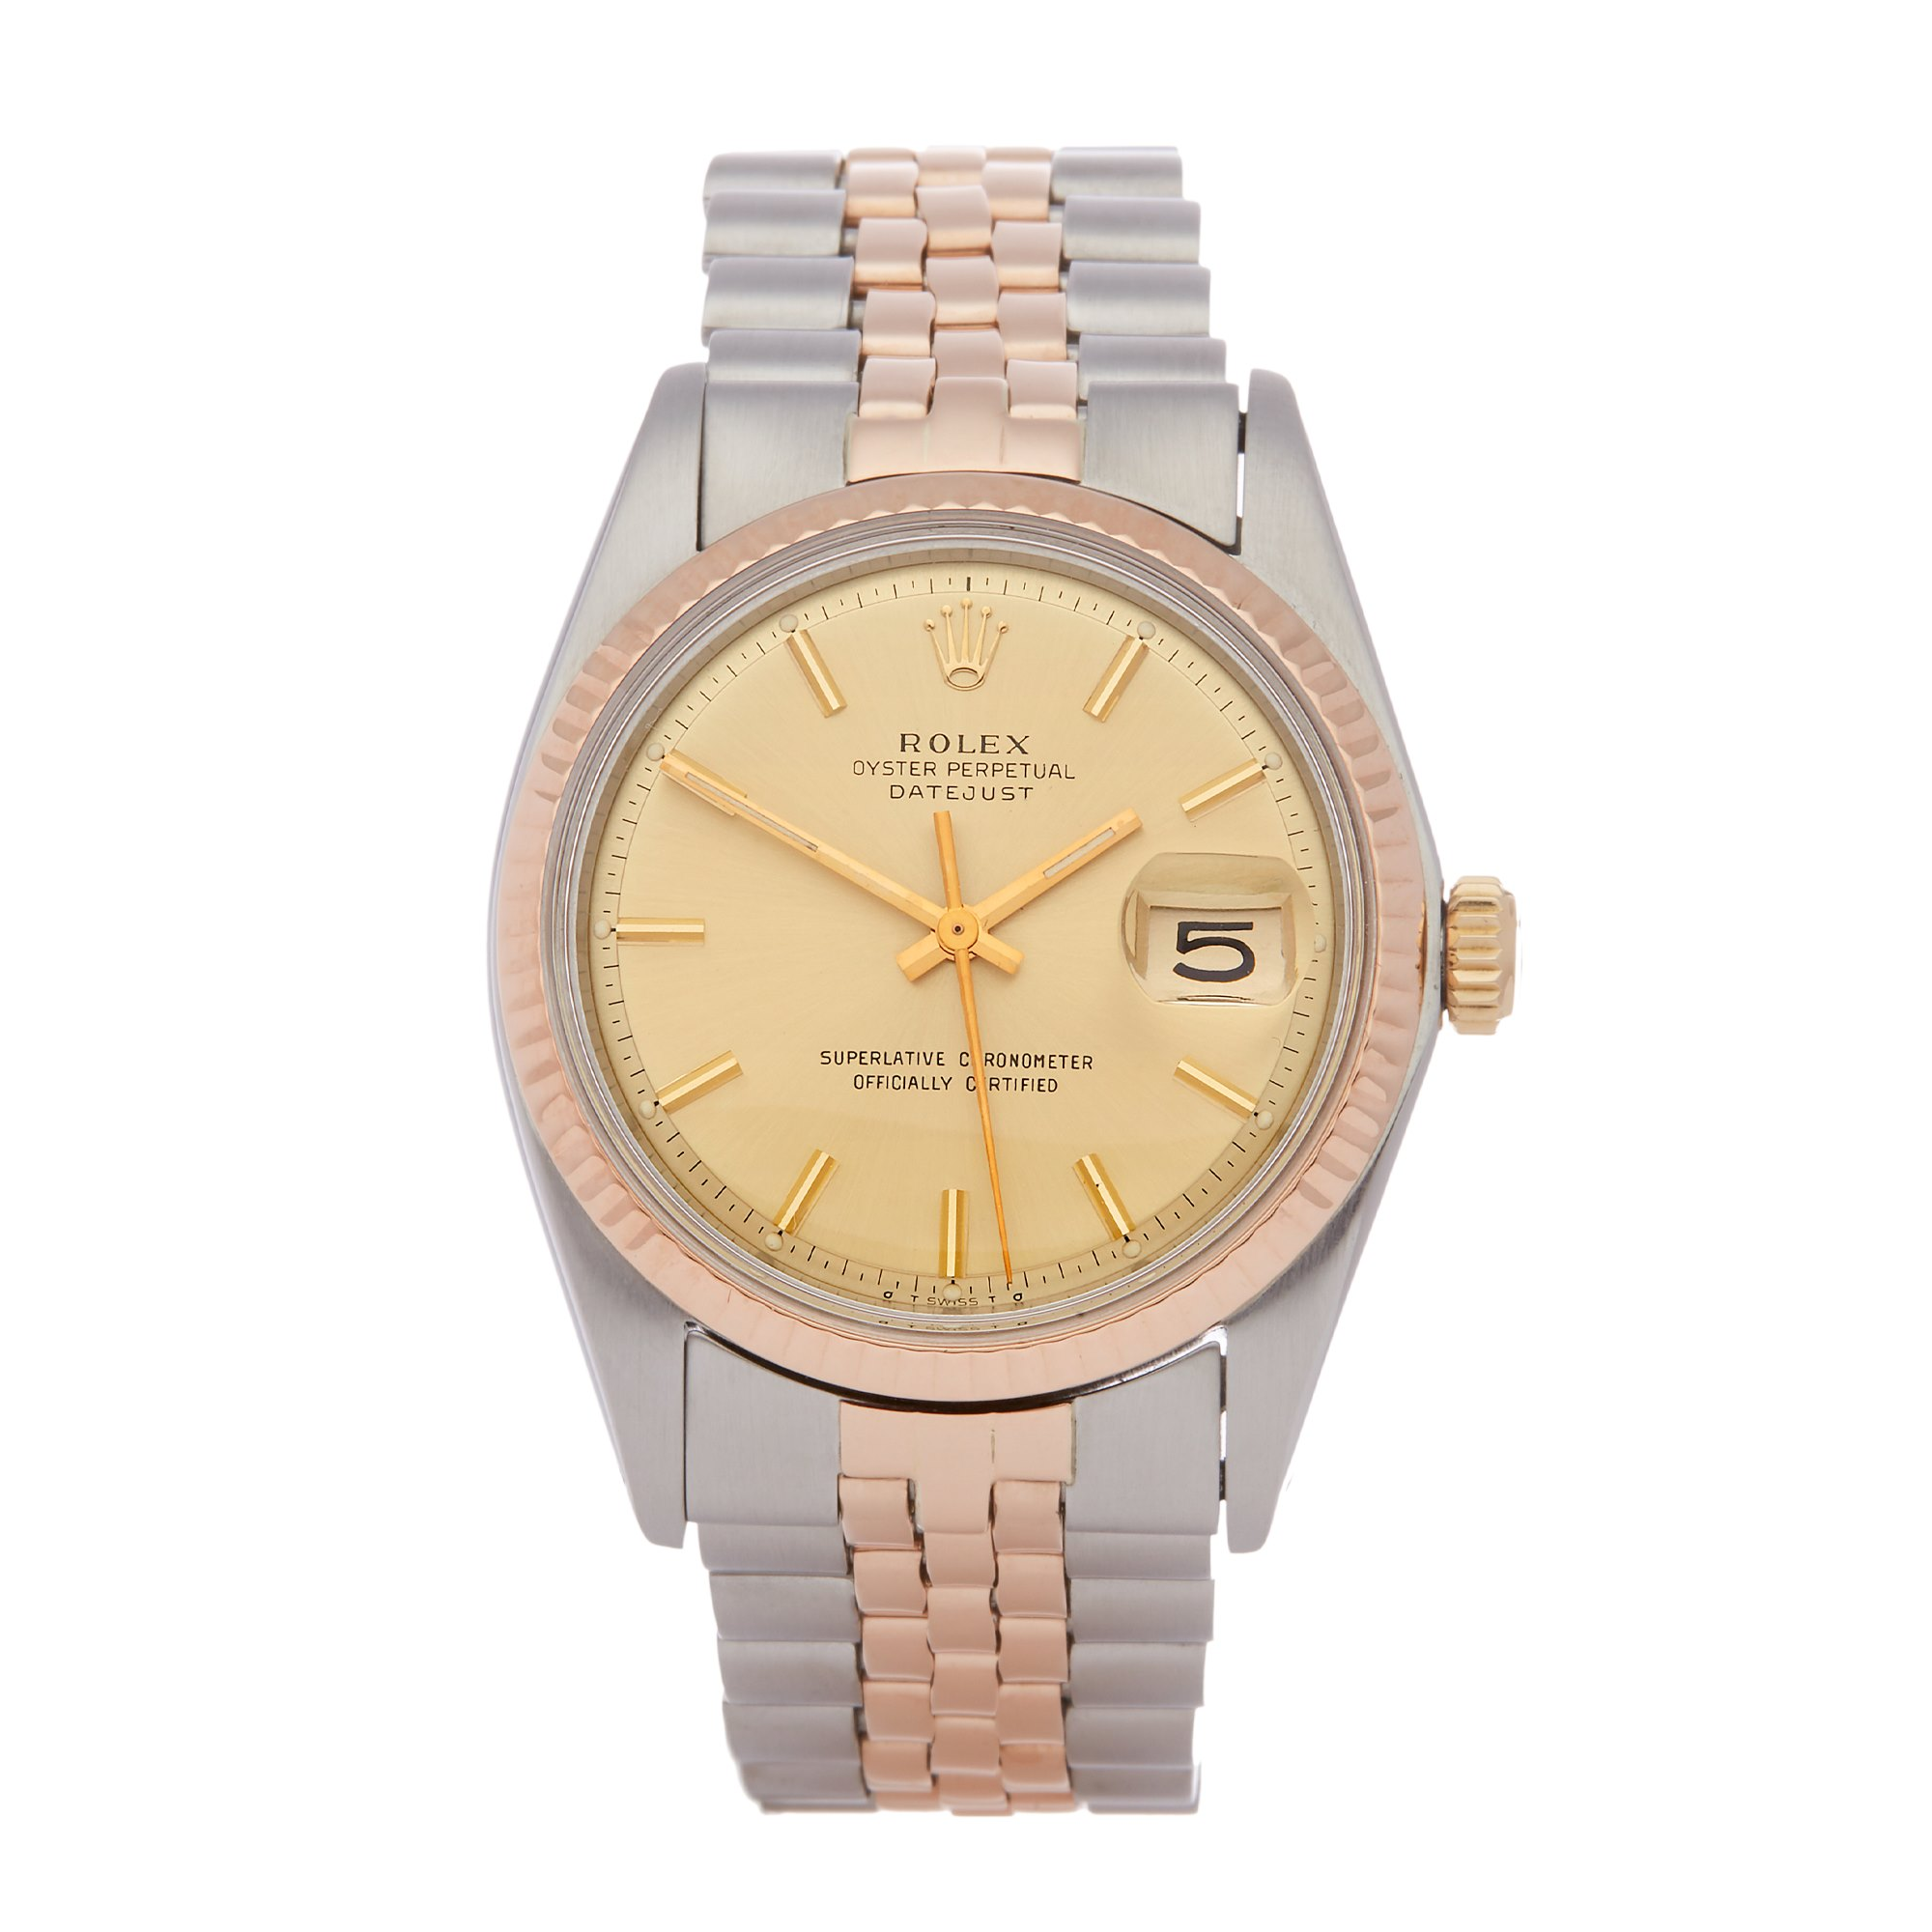 Rolex Datejust 36 18K Rose Gold & Stainless Steel 1601